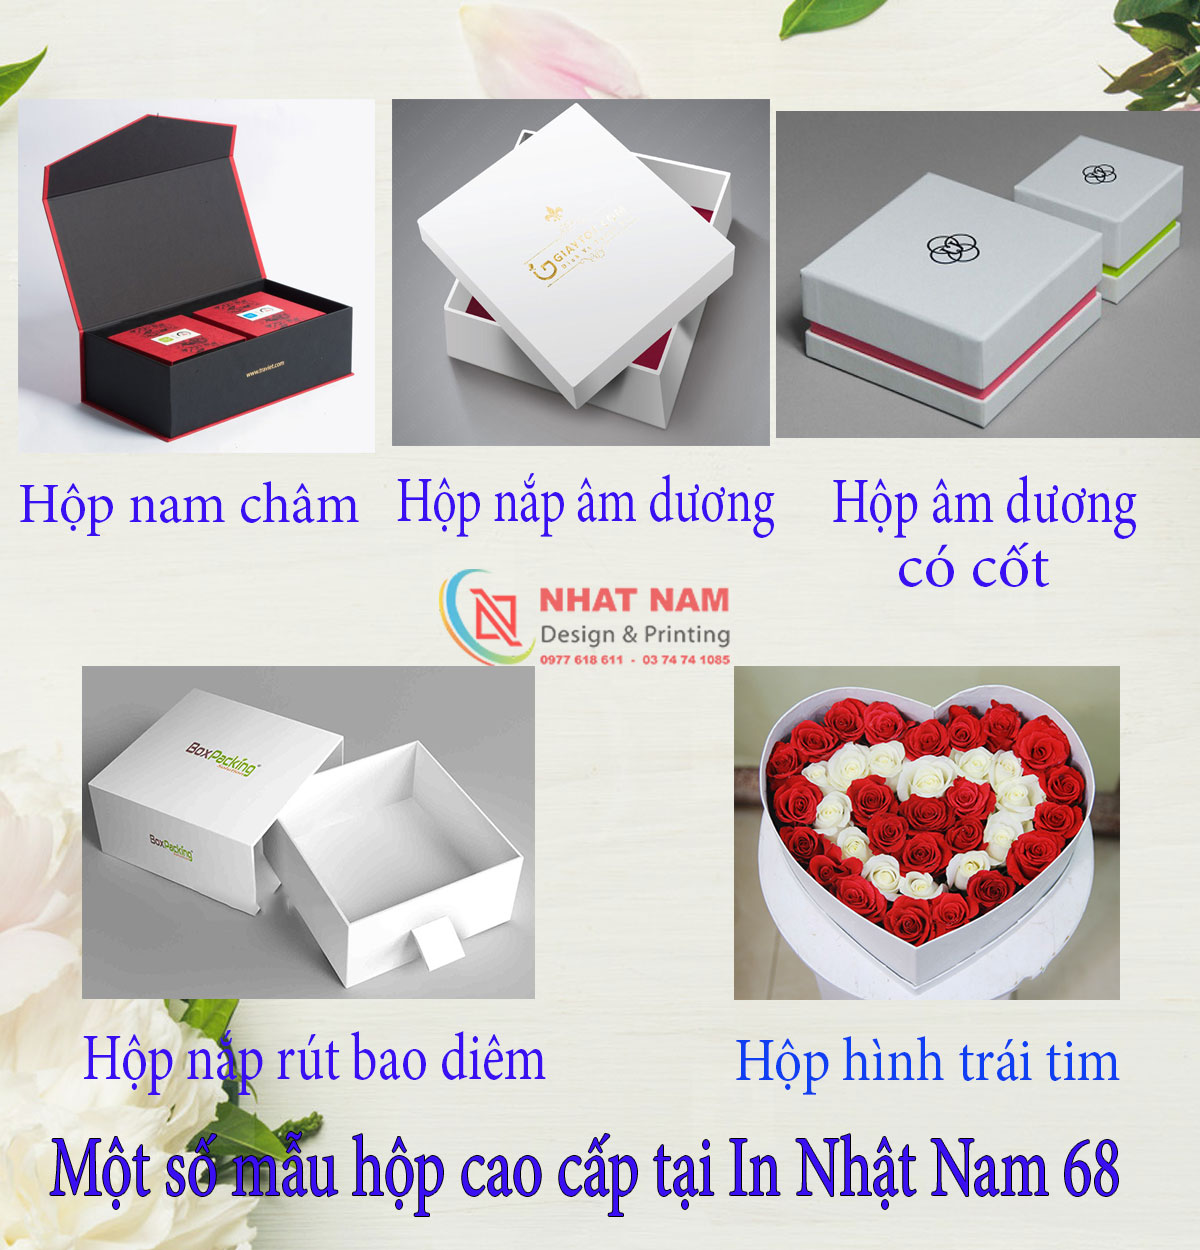 Quy cách in cho hộp cứng cao cấp